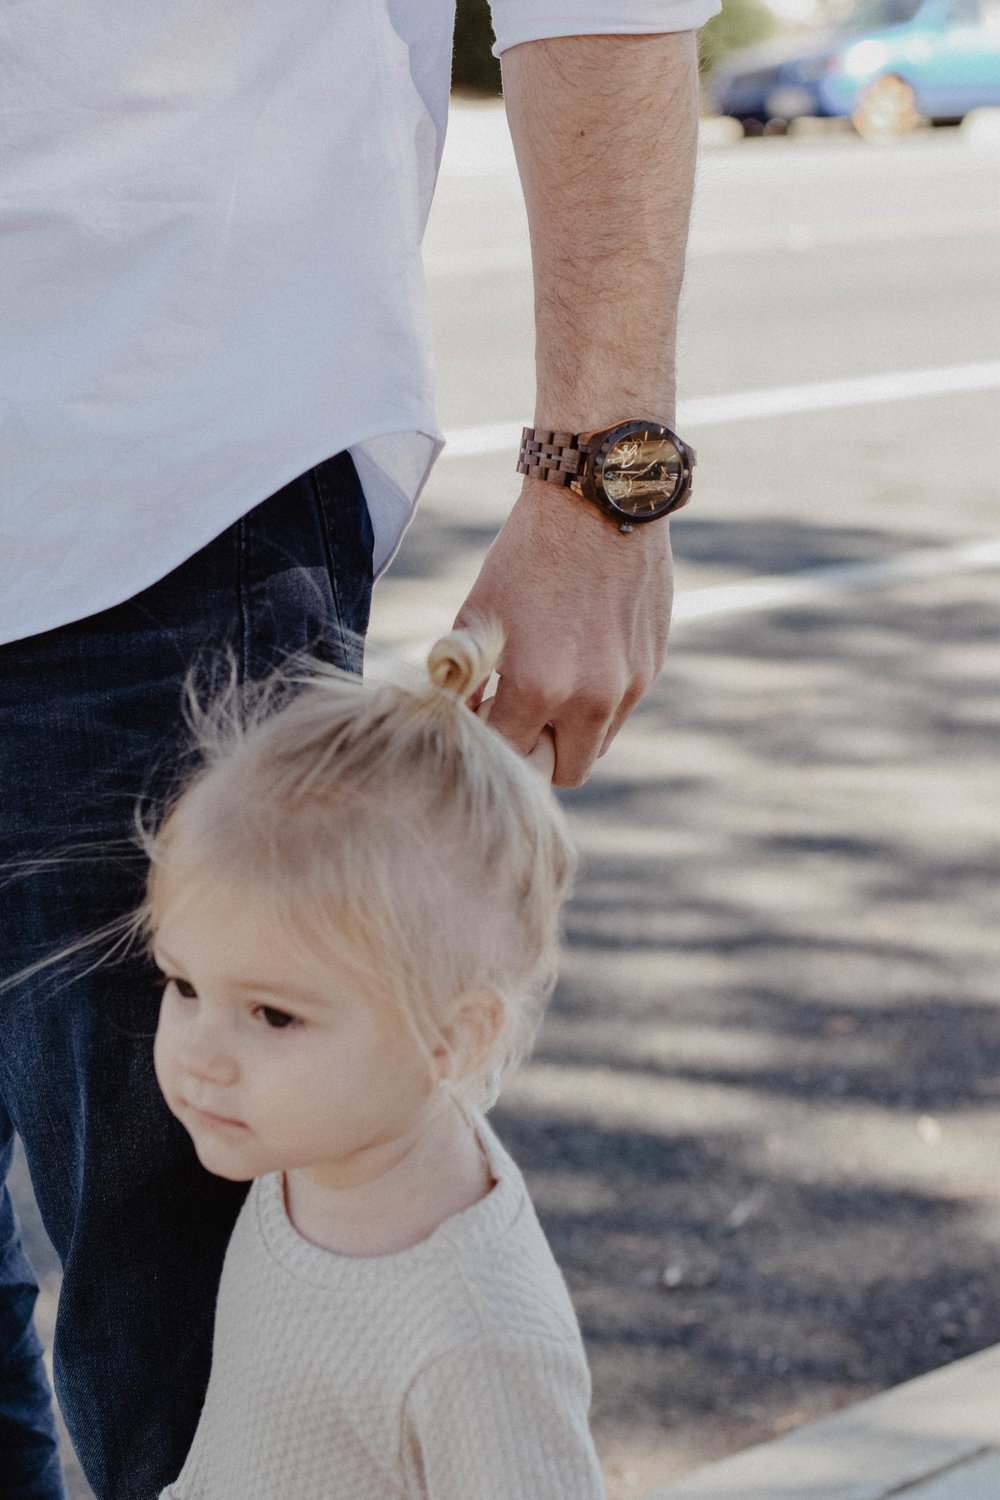 Engraved Wooden Watches for Men - Valentine's Day Gift Ideas for Dads -- The Overwhelmed Mommy - Mommy Blogger